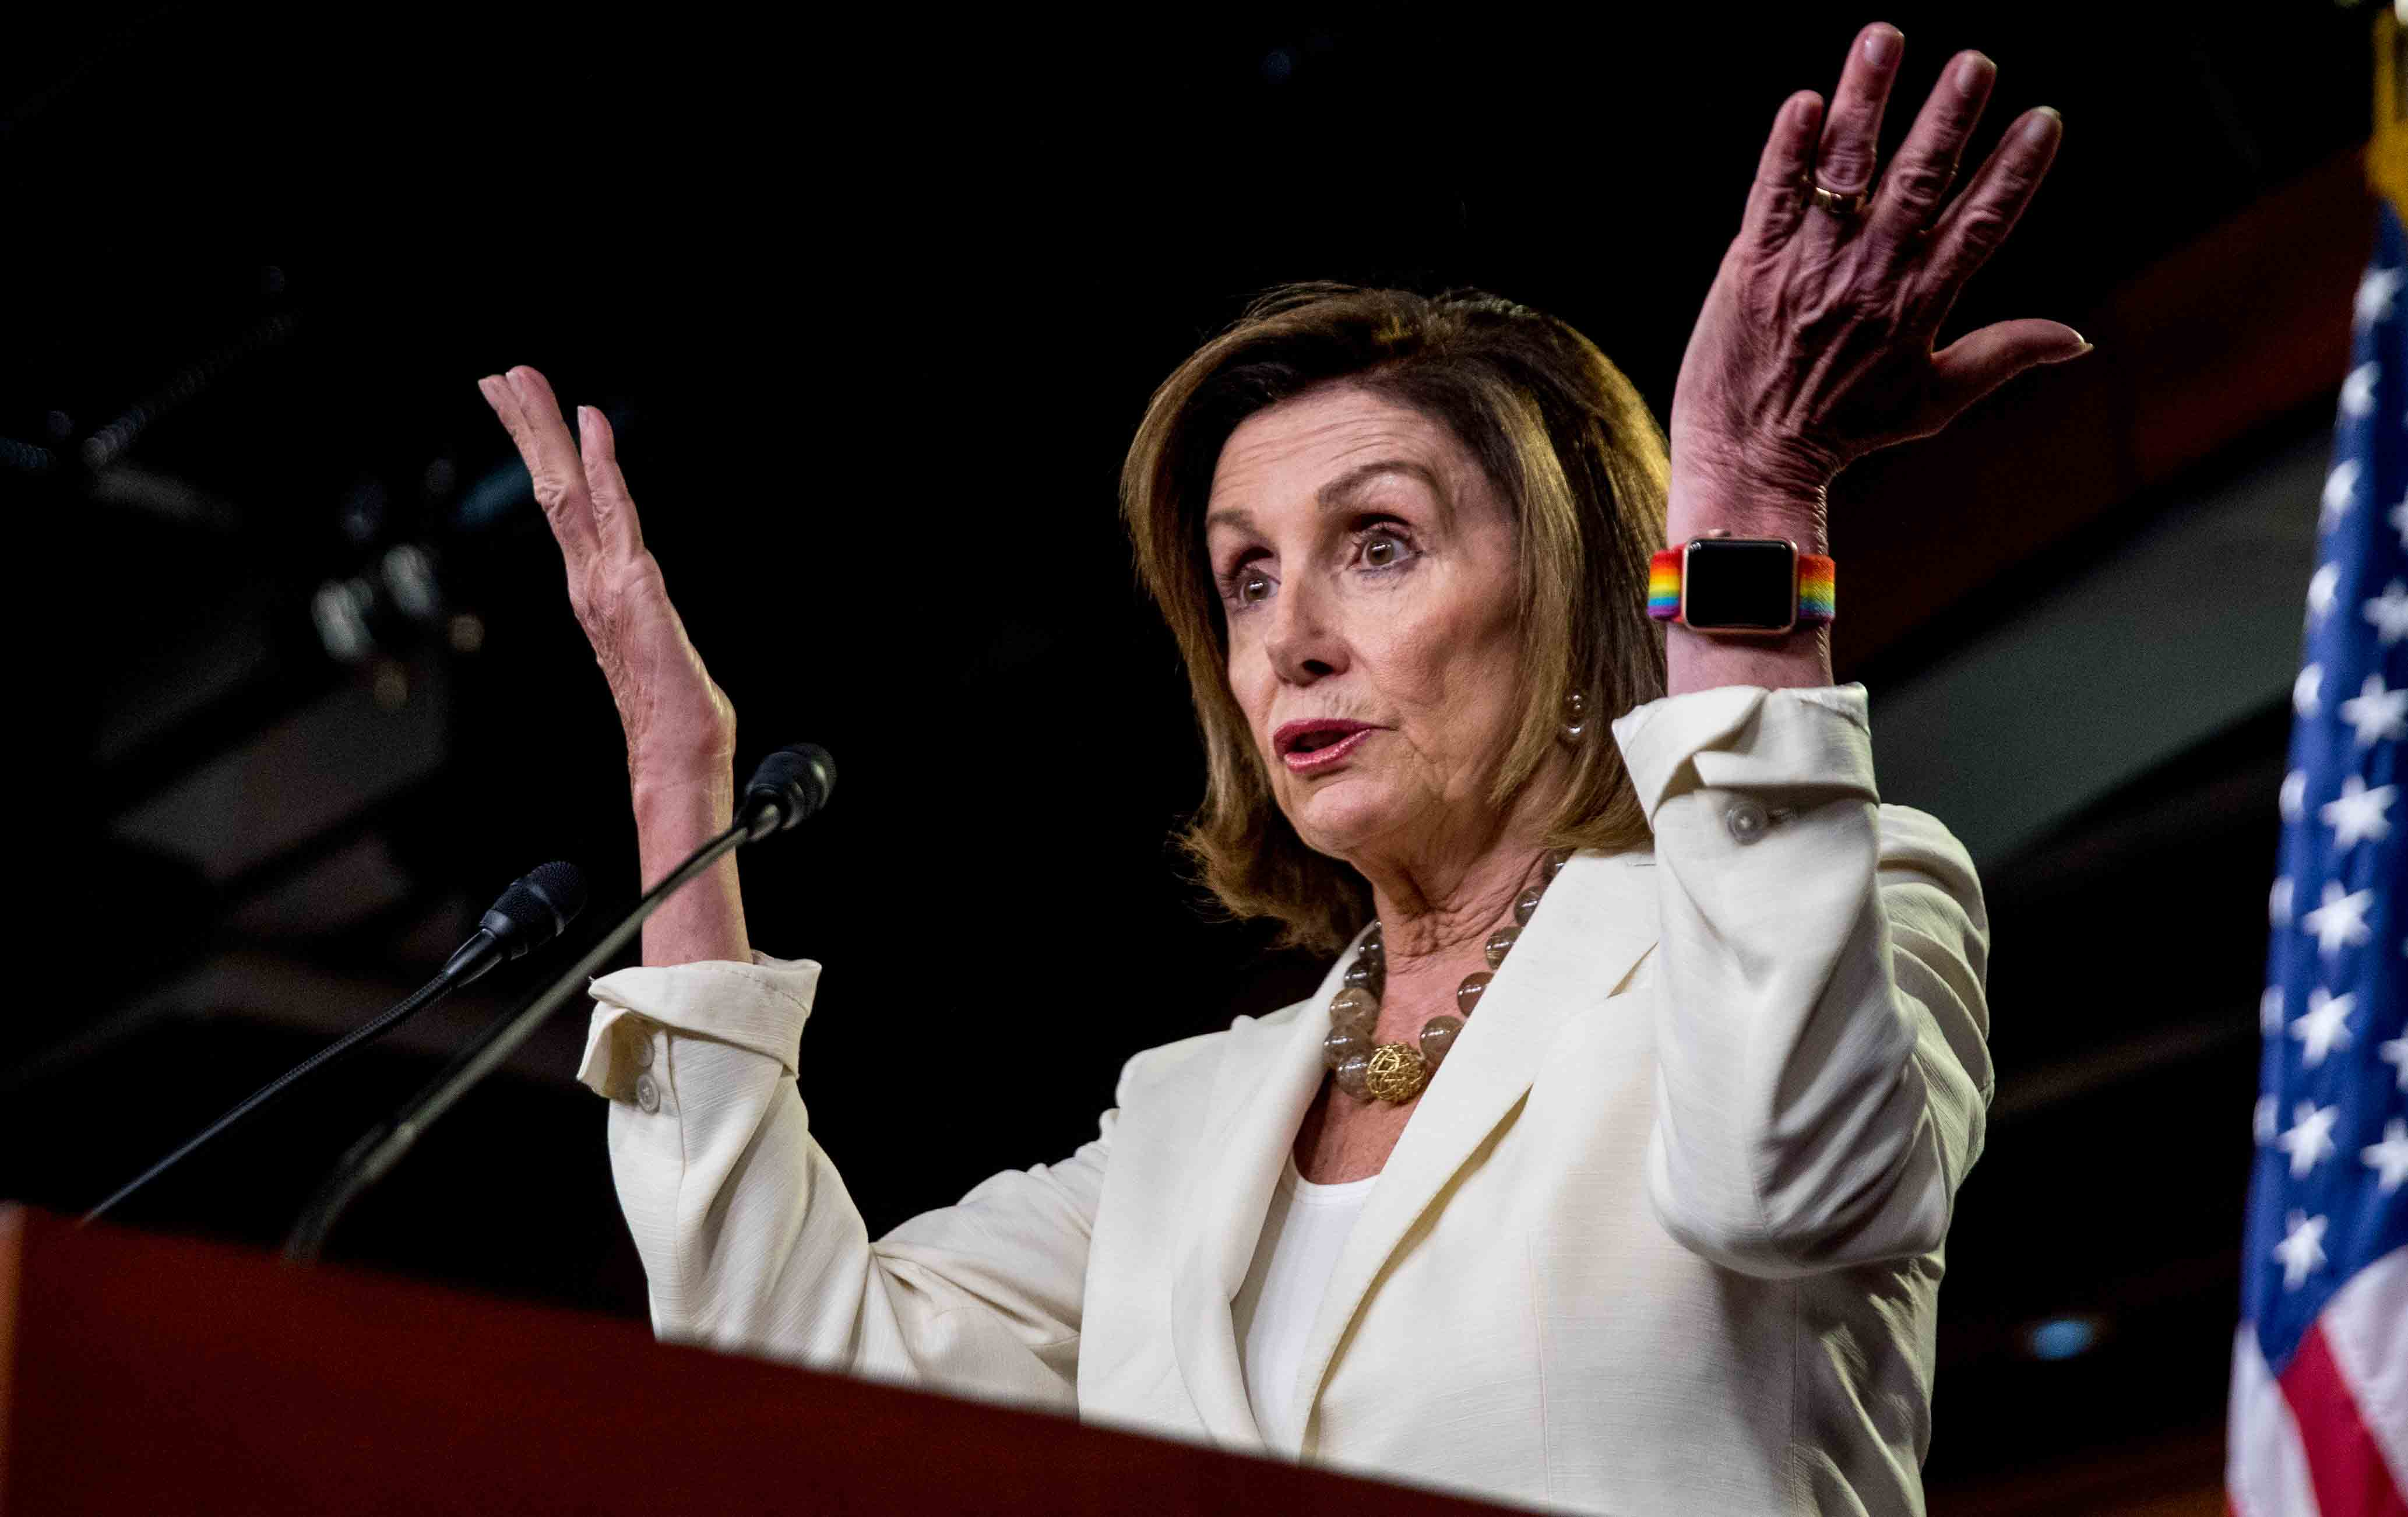 Nancy_Pelosi_hands_img